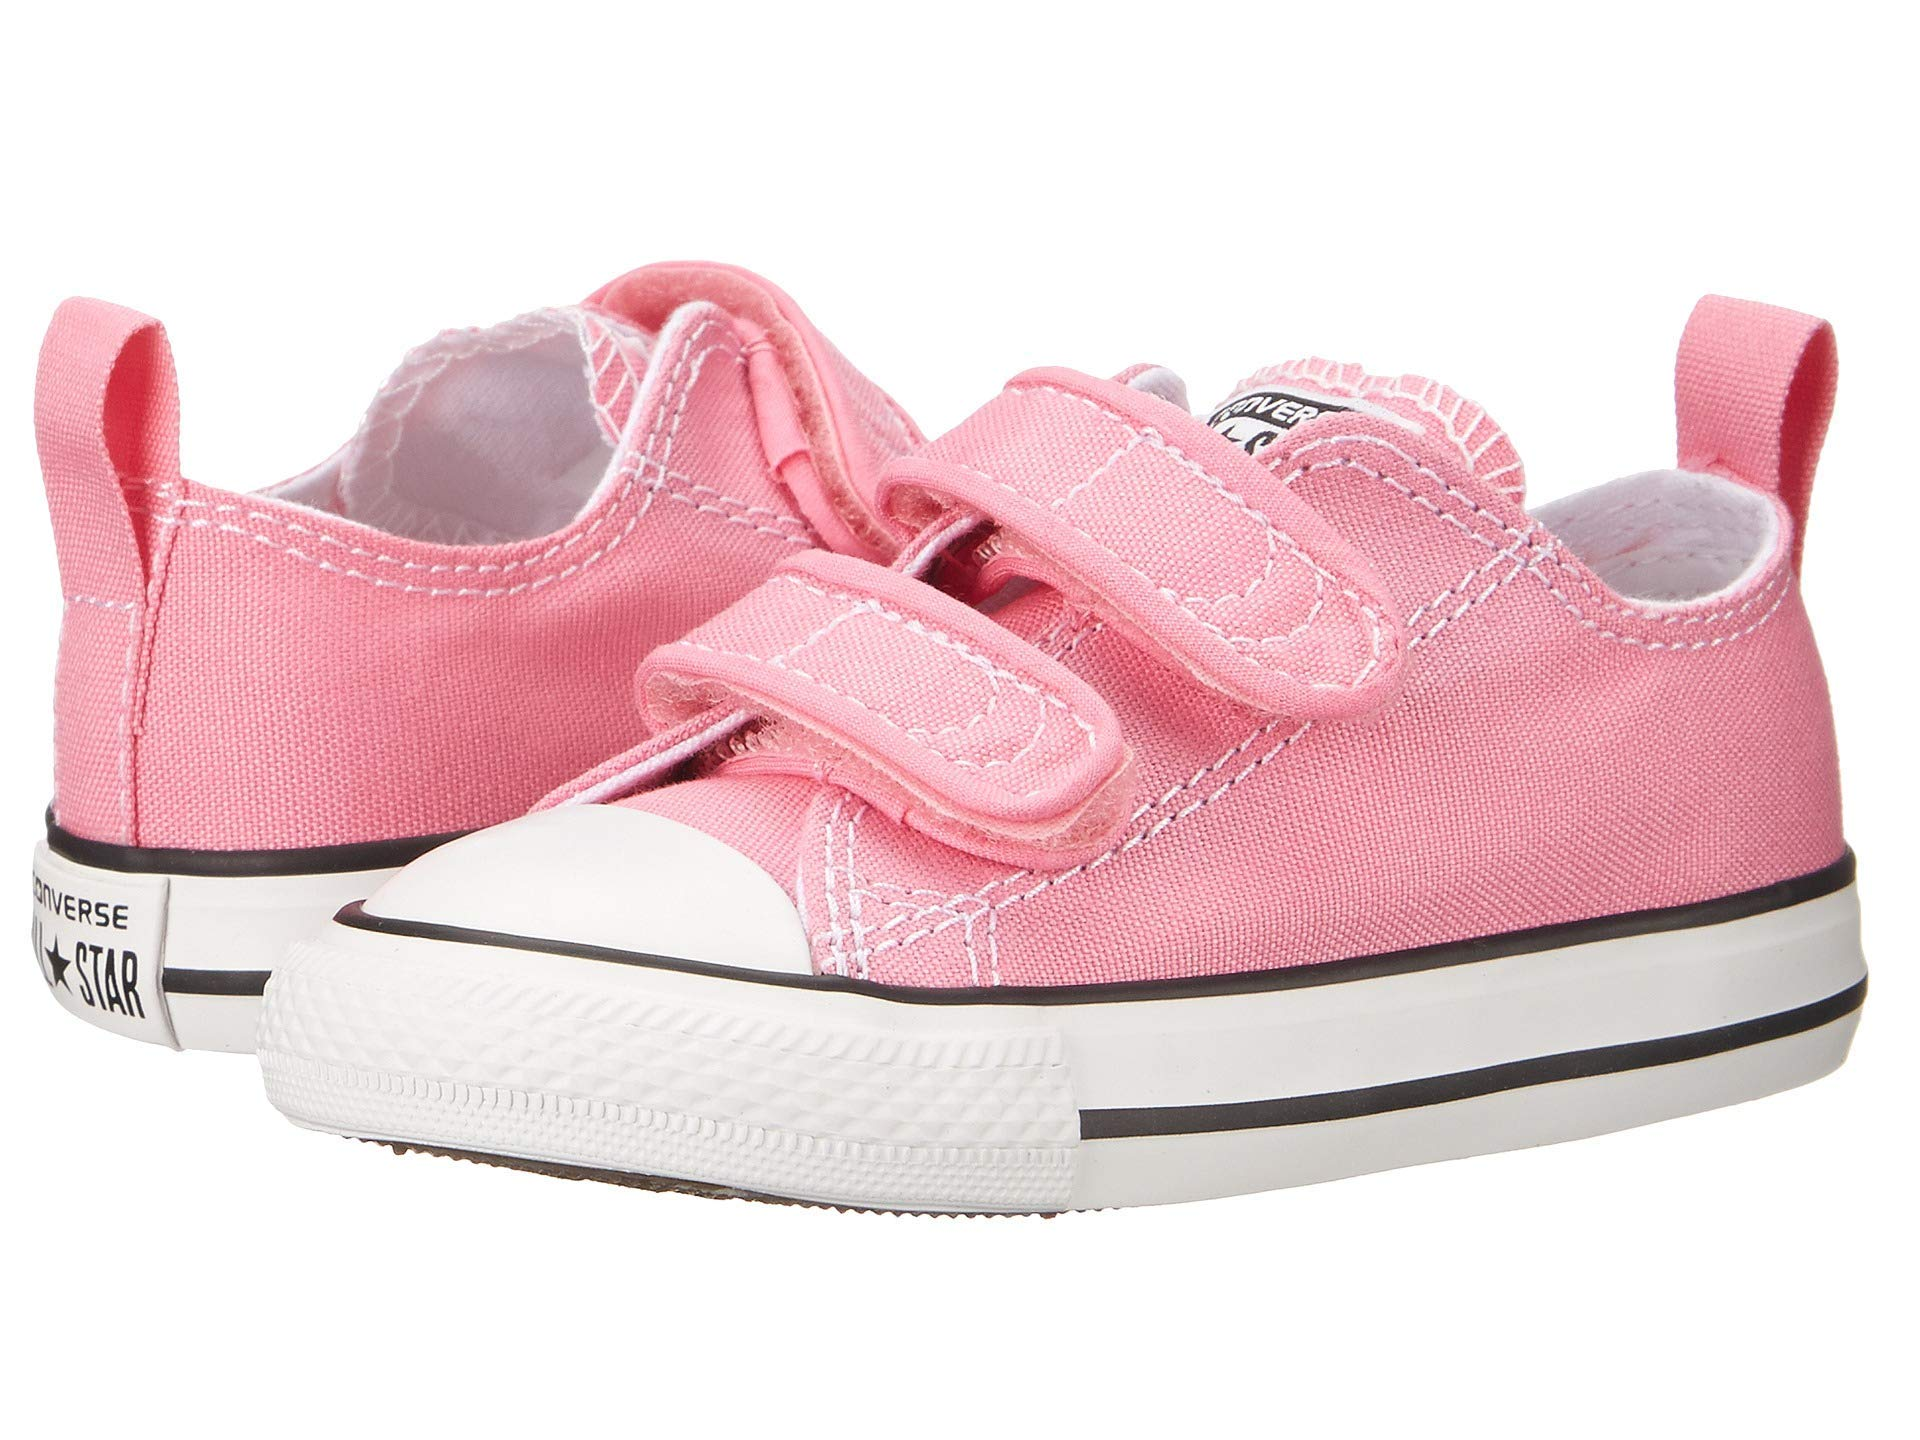 Converse Toddler Velcro Pink Size 5